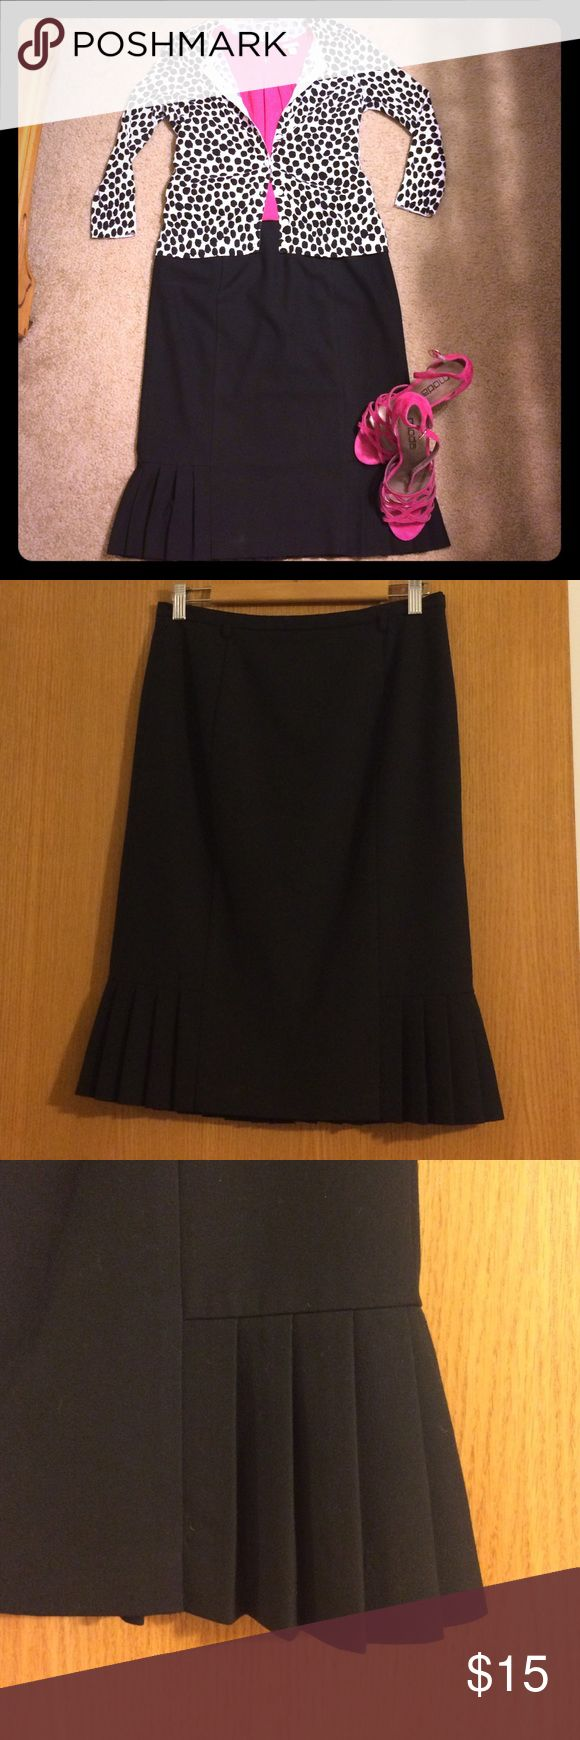 Talbots Black Pencil Skirt Adorable black pencil skirt with feminine pleating at hem. Fully lined. Hidden zipper in back. Missing belt. Size 4. Talbots Skirts Pencil